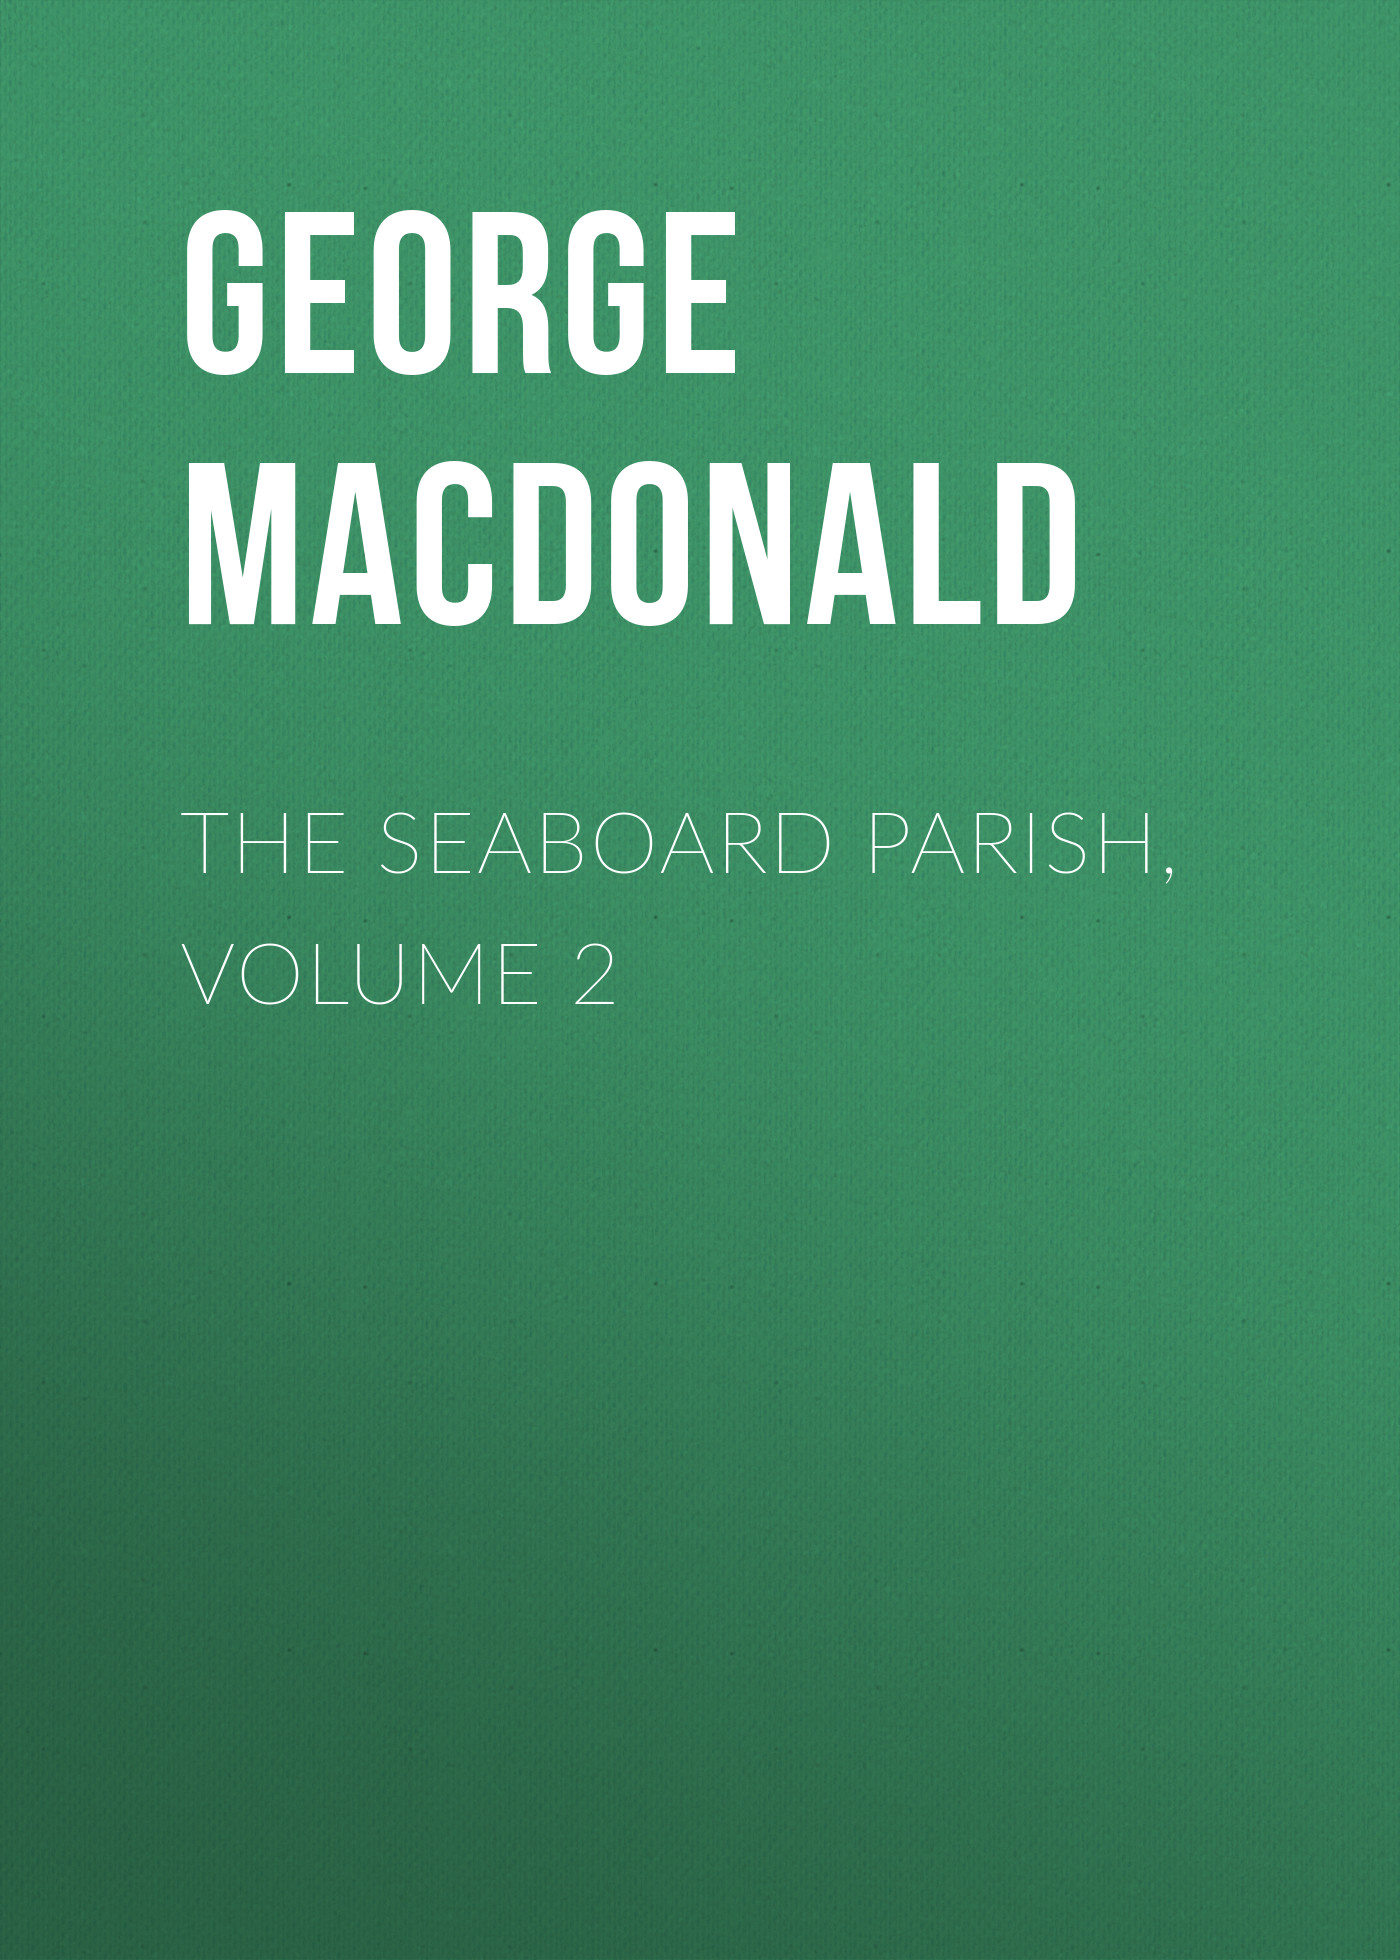 George MacDonald The Seaboard Parish, Volume 2 george macdonald the seaboard parish volume 1